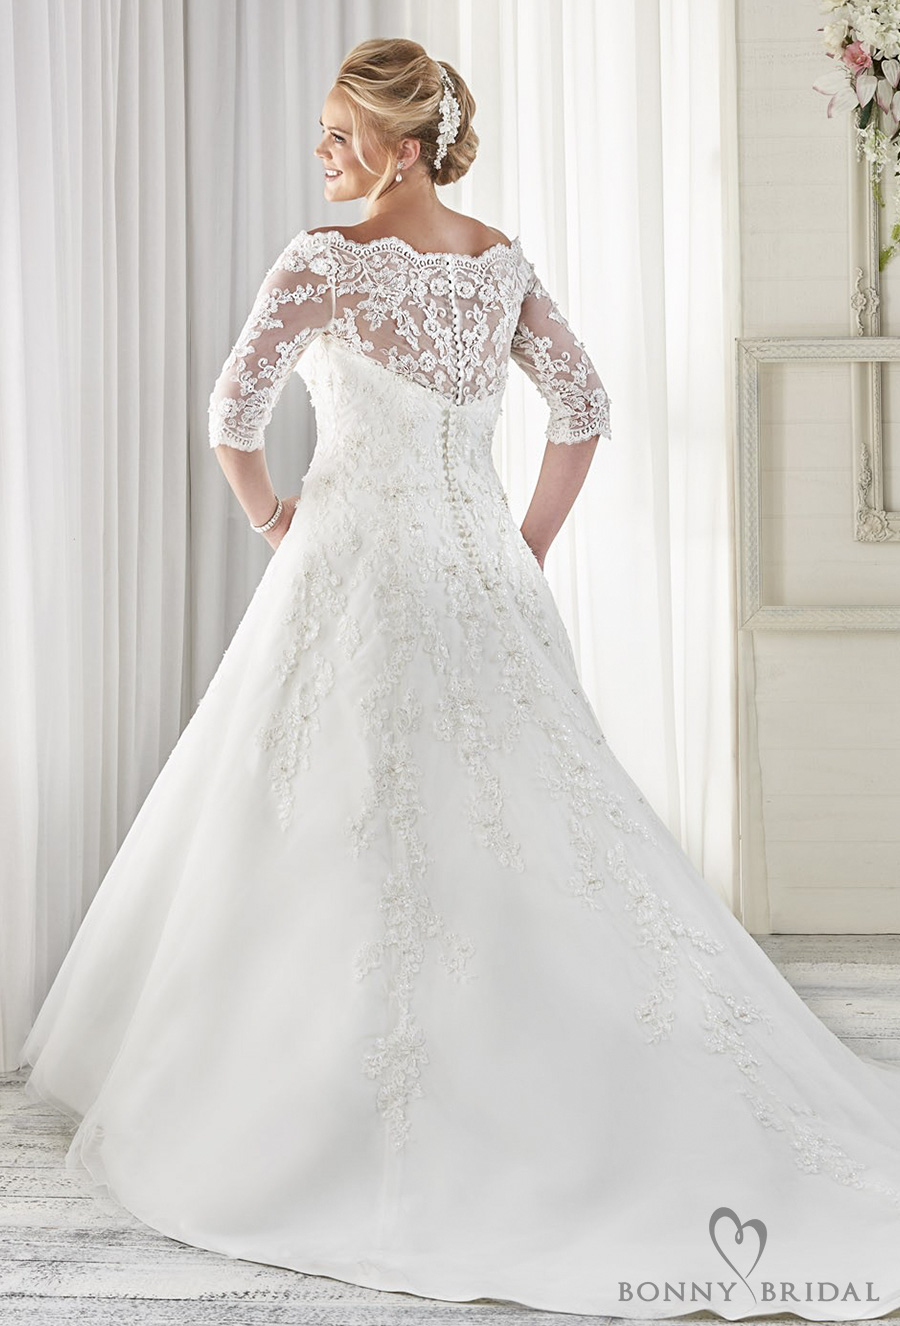 Bonny bridal wedding dresses unforgettable styles for for Plus size lace wedding dresses with sleeves